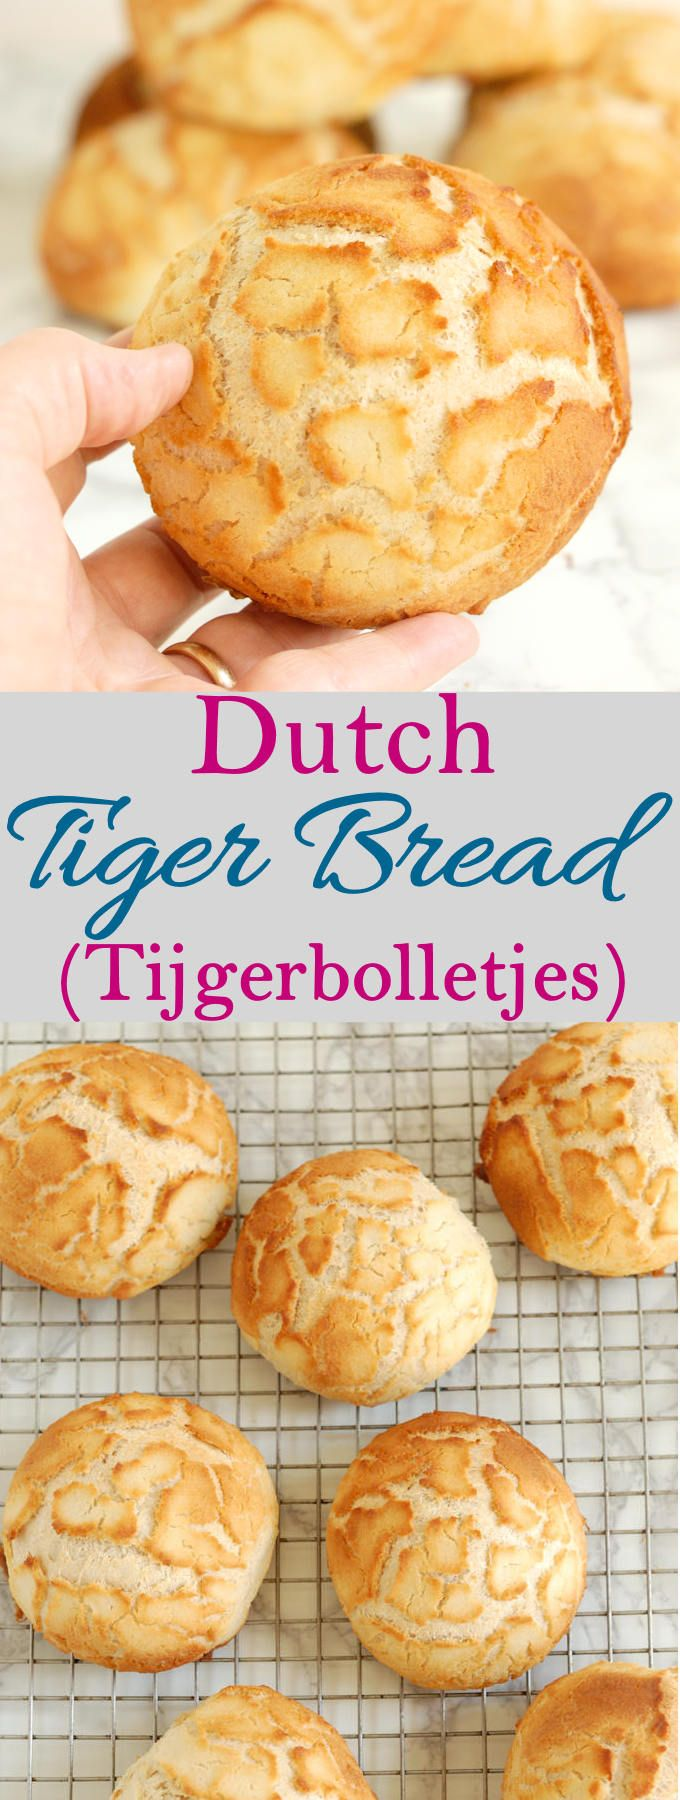 Learn how to make super-crunchy Dutch Tiger Bread (tijgerbolletjes) from scratch. The secret to the crunchy topping is surprisingly easy!